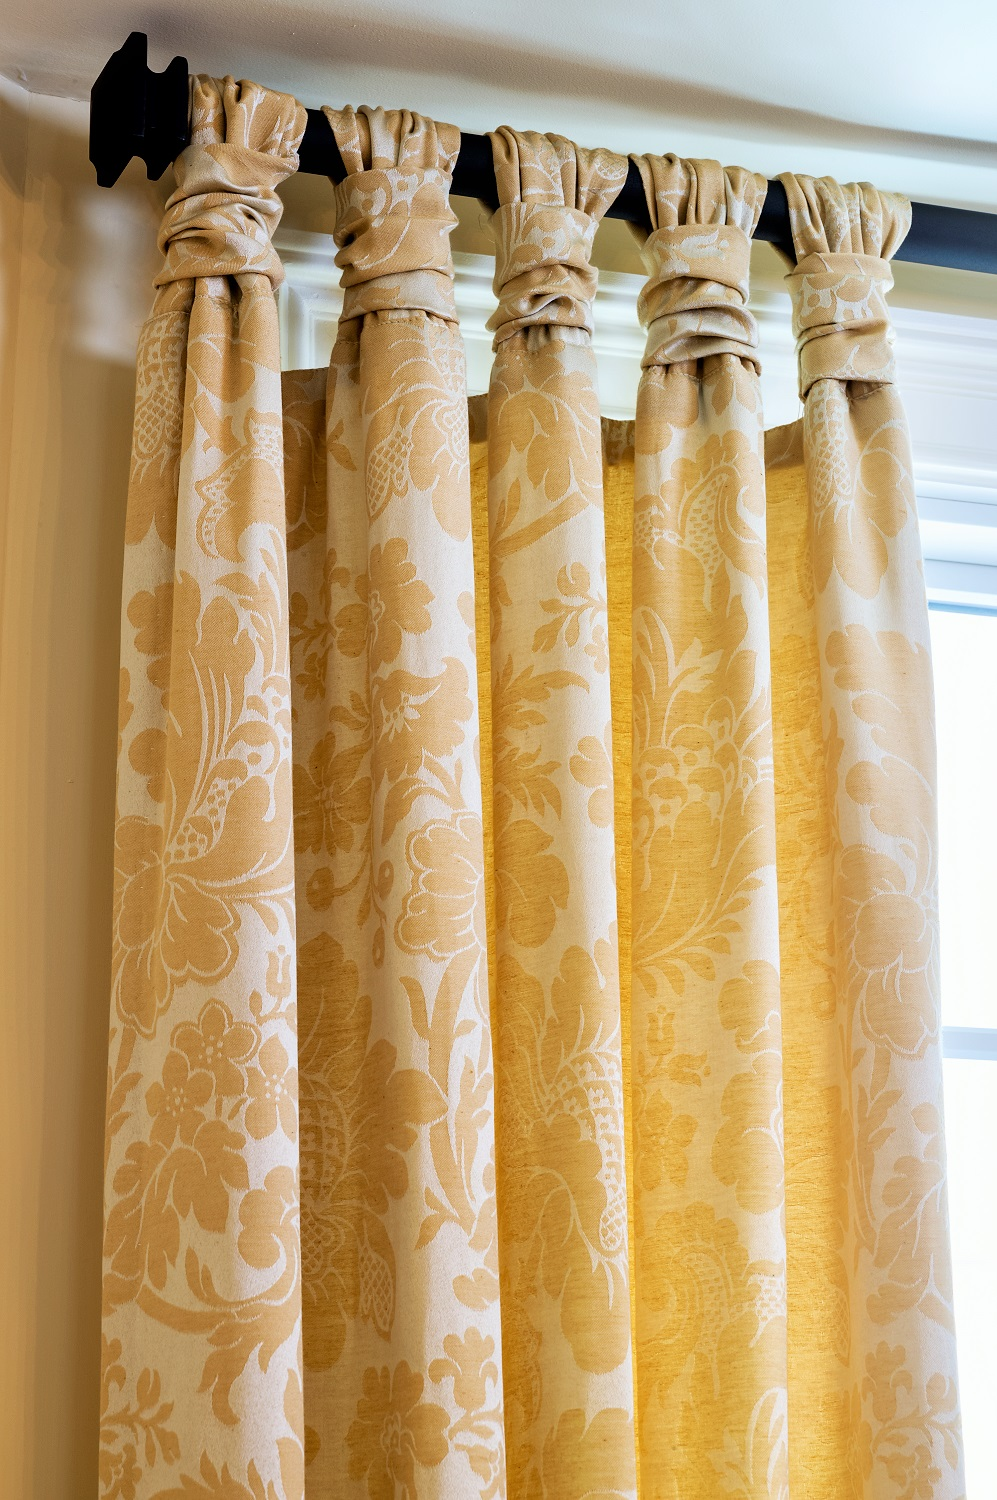 interior-design-color-window-treatments-franklin-lakes-new-jersey-4.jpg